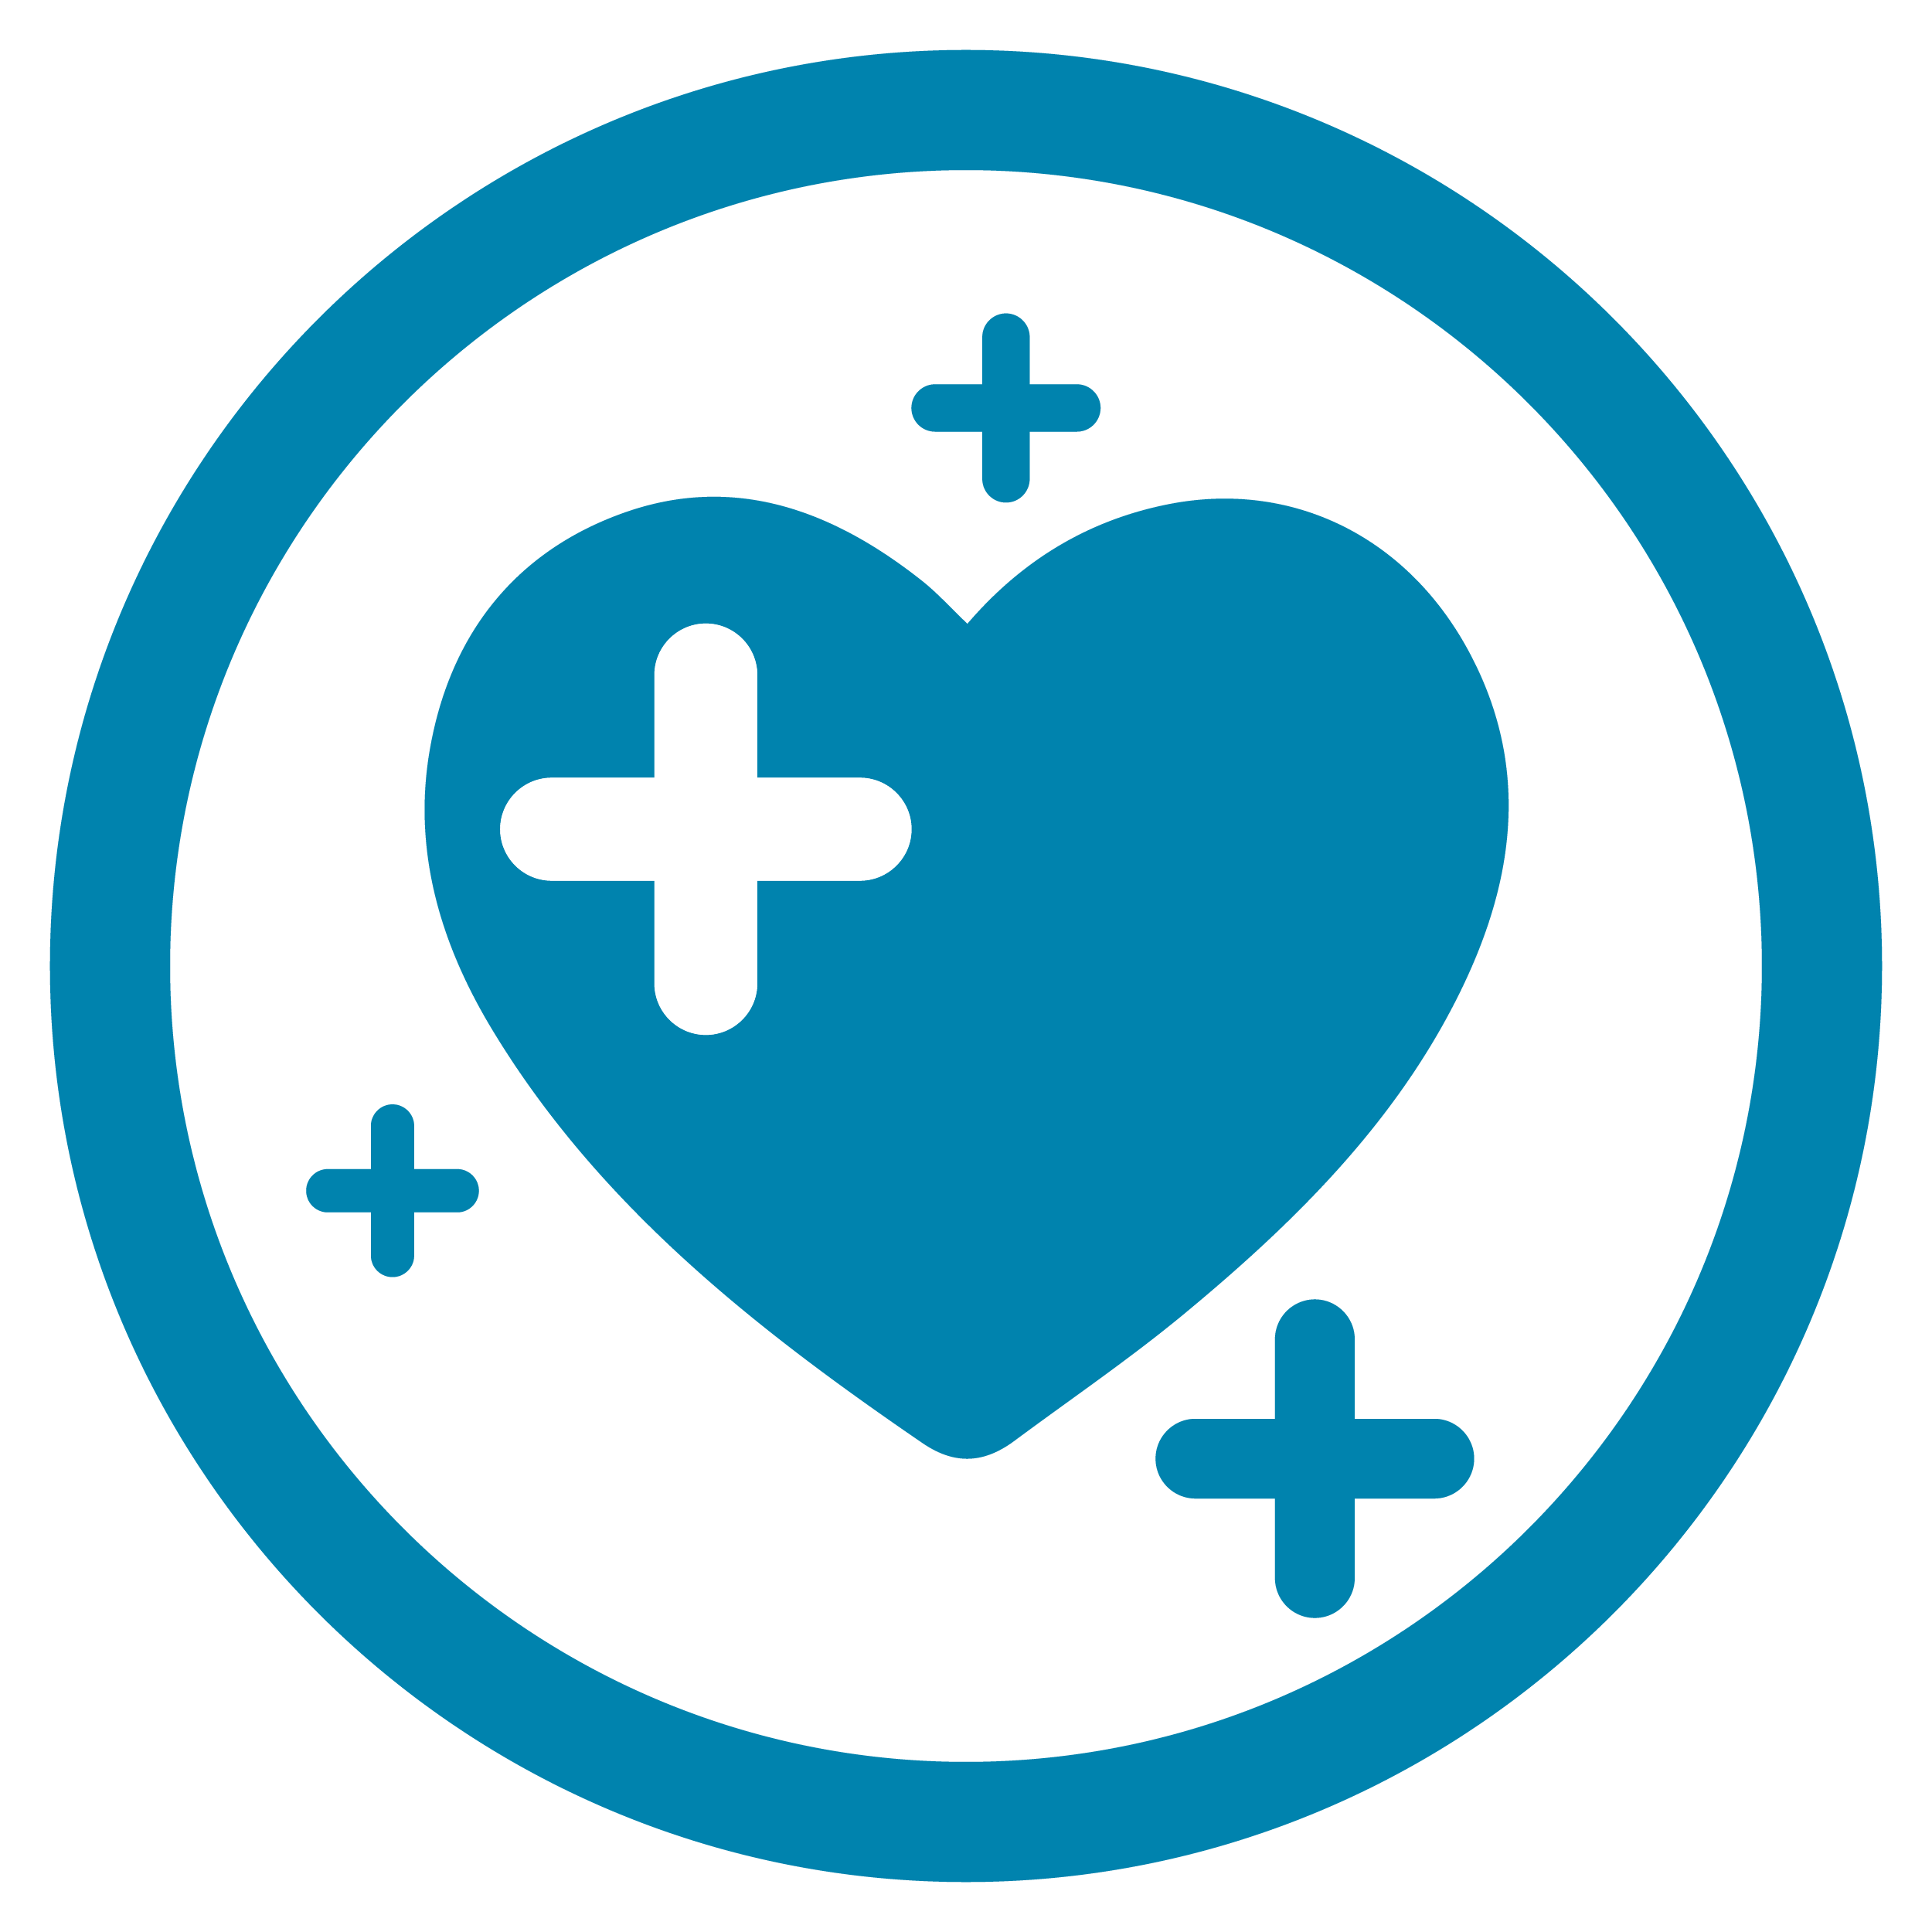 A blue circle with a heart inside it and plus symbols.